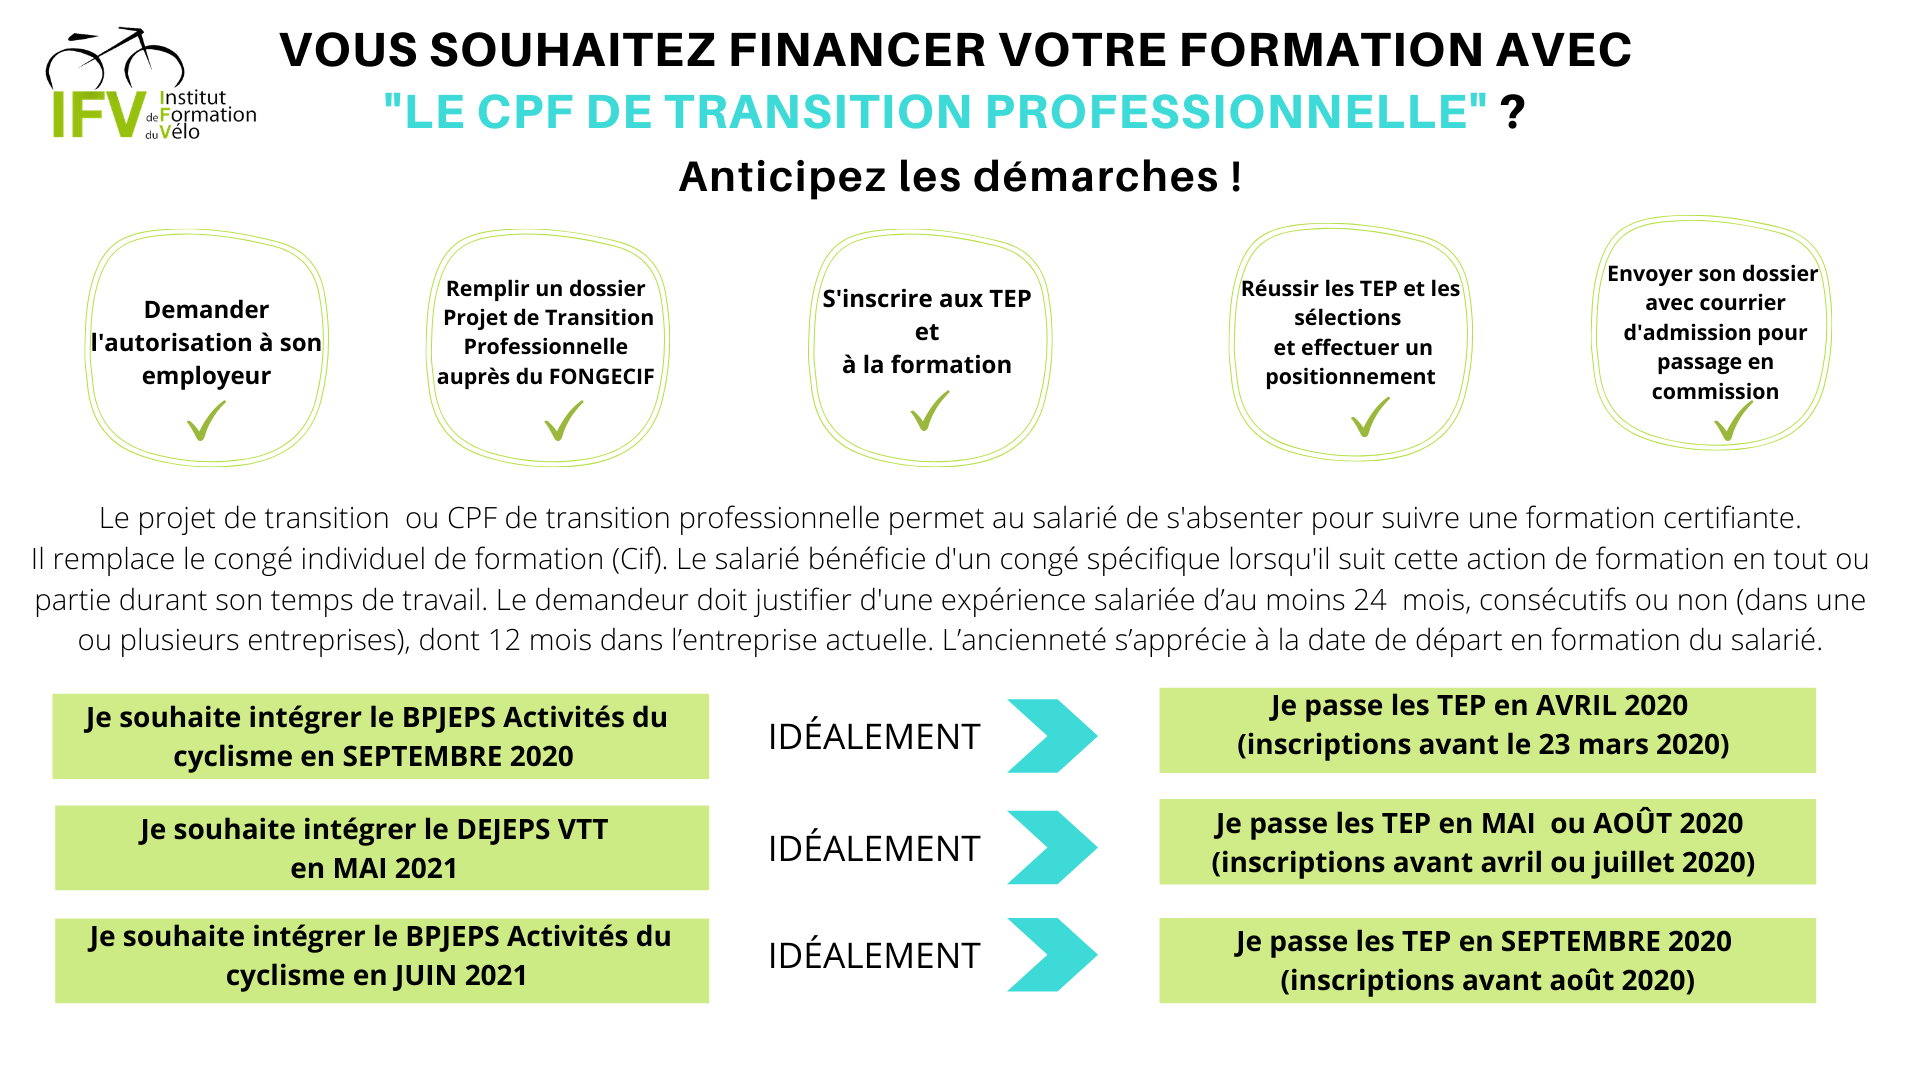 Cong de transition professionnelle tapes